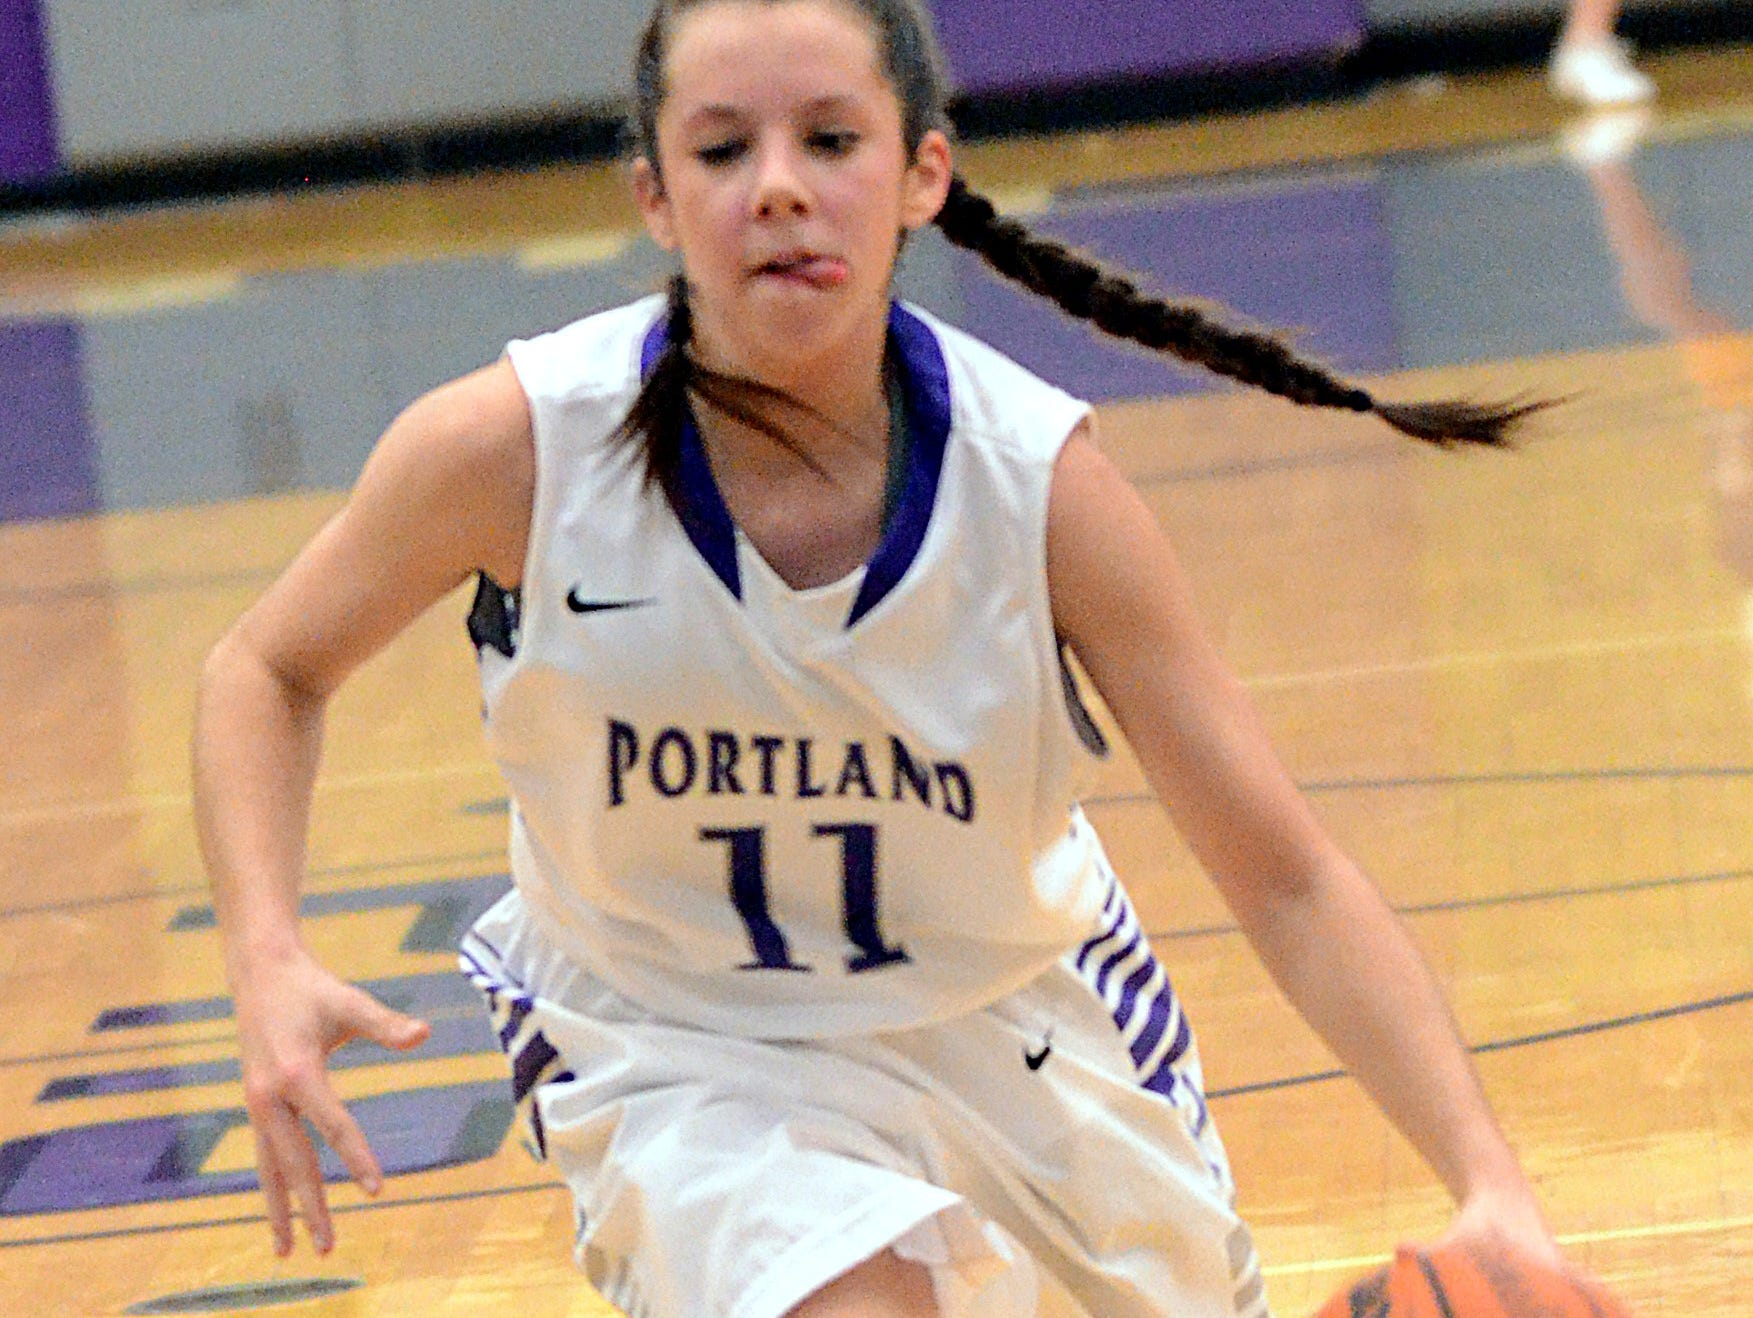 Portland High sophomore point guard Rachel Jennings dribbles into the lane during second-quarter action. Jennings scored five points.